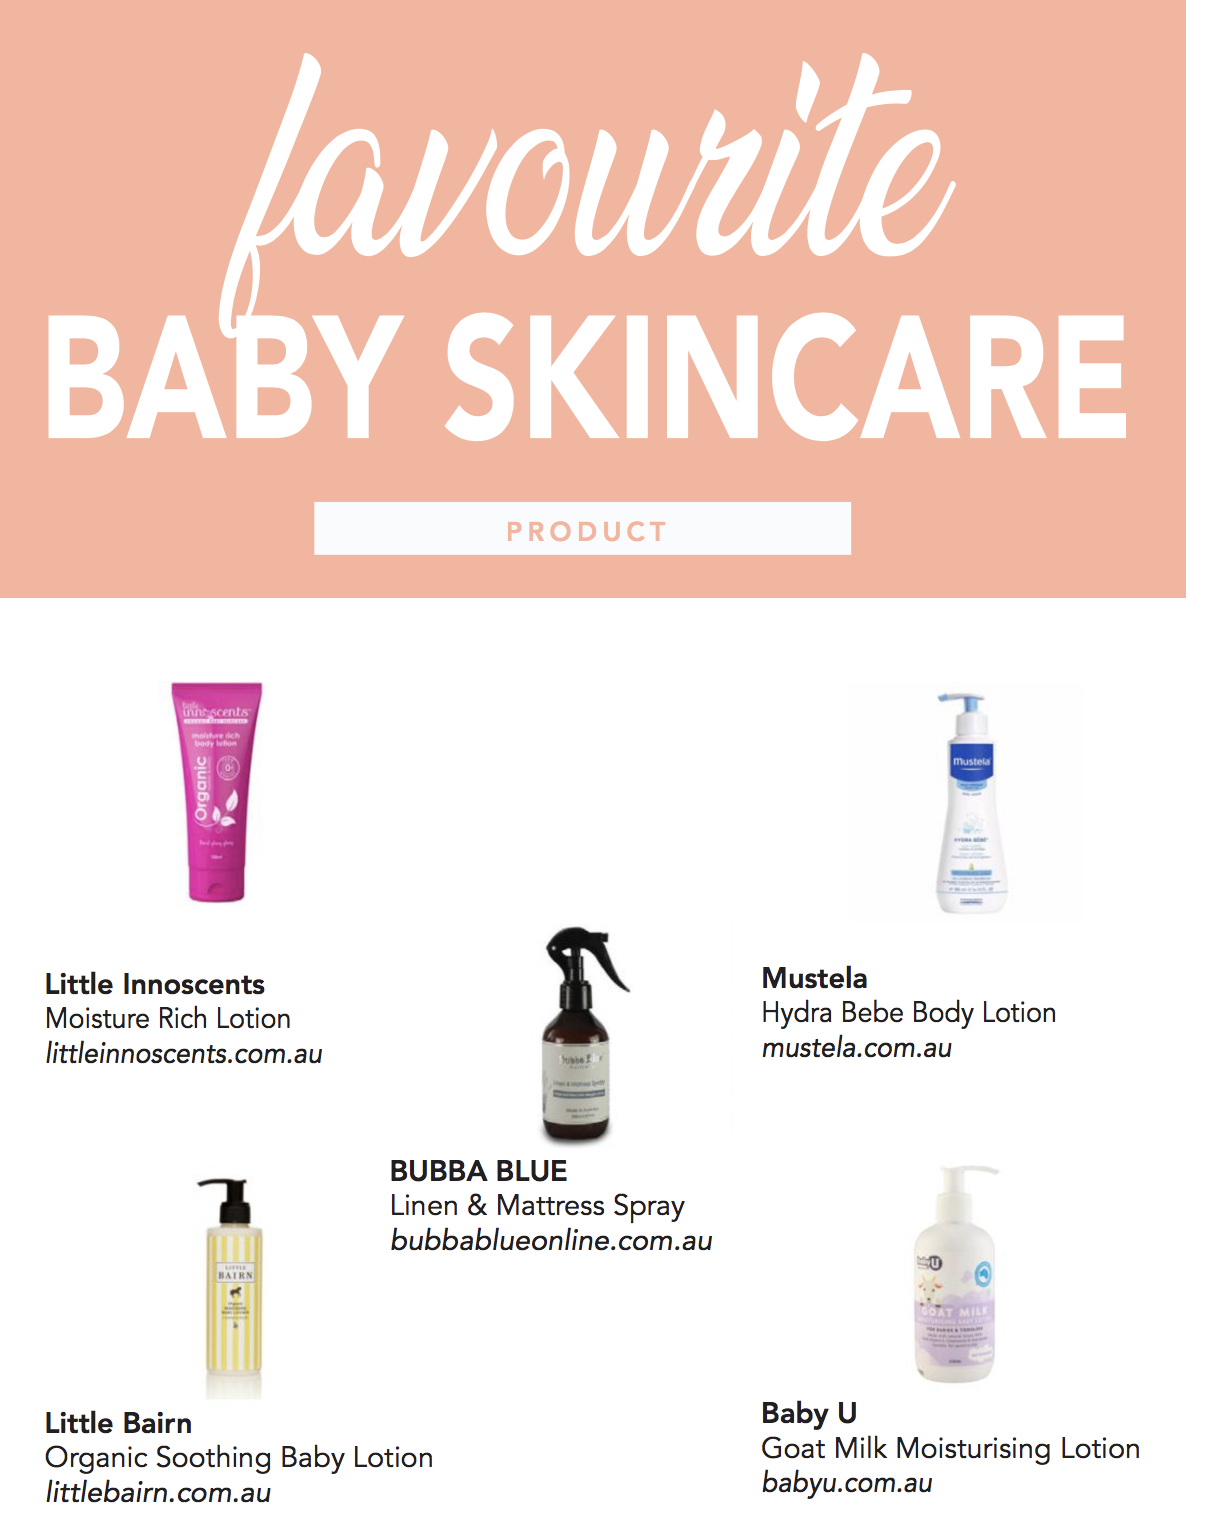 Little Bairn - We know our favorites very well, it's organic, no nasties, natural, gentle, and kind too!http://www.mychildmagazine.com.au/march-issue-special-edition-excellence-awards-2107-2/2018-excellence-award-pull-out-vote-now-final/